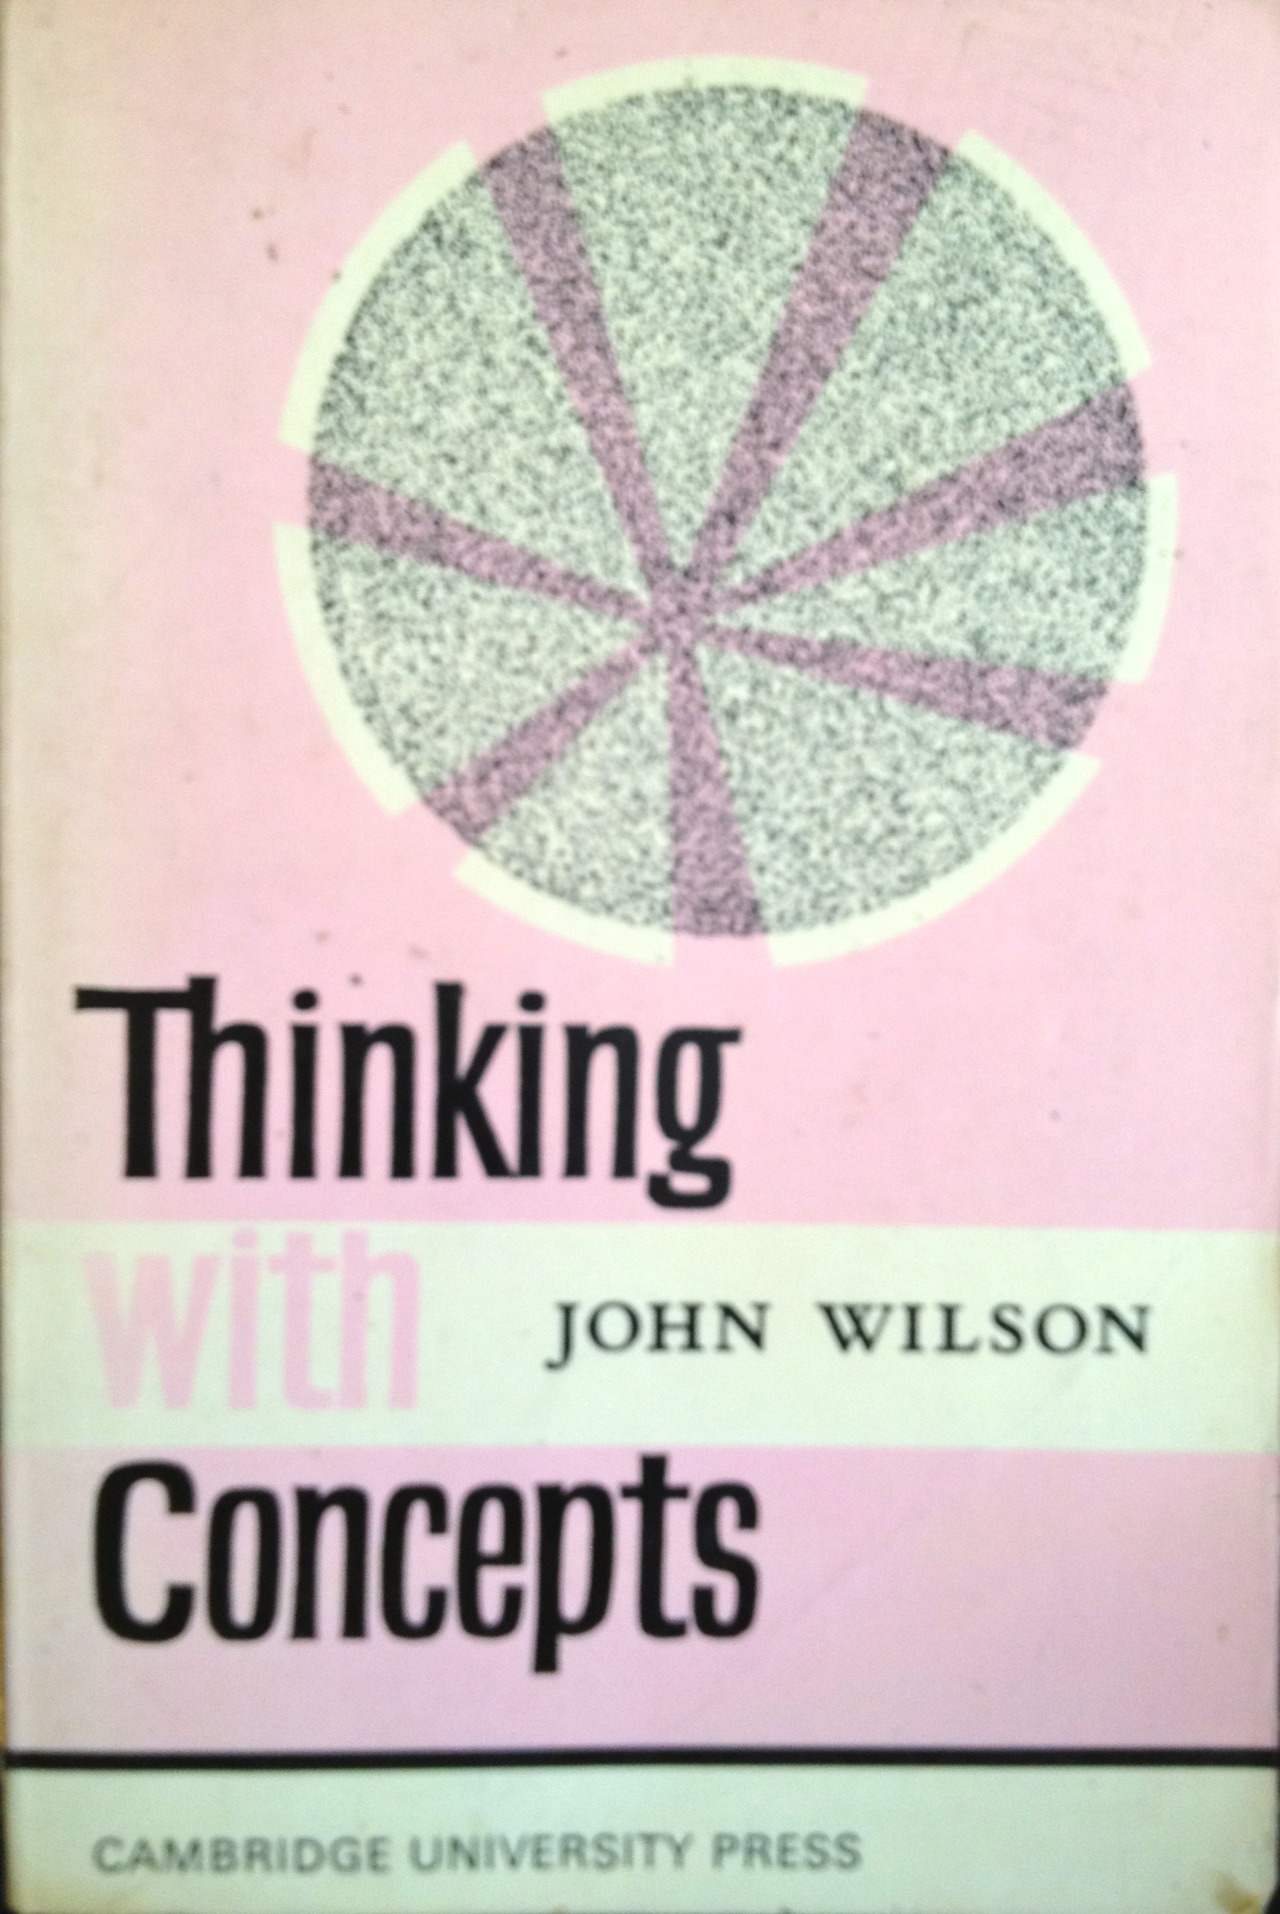 I can't imagine what moved me to pick up a copy of this book in college. It was not required for any course. But I'm glad I did. First published in 1963, it resembles at first glance a textbook for making good, reasoned arguments about concepts and abstractions. But his prescription for critical analysis (along with examples and exercises) actually improves and clarifies the ability to think, write and argue. It is one of those rare books that made me feel smarter after I finished it. I lost my original copy and tracked down this one on Amazon a few years ago. It was as good as I remembered it, clear and precise, charming and quirky, and very British. This snippet won't do it justice:     Behind the notion of 'how to analyze concepts' , therefore, there lies the still more general skill, 'how to talk' or 'how to communicate': and to employ this skill we have to learn above all to recognize and enter into the particular game which is being played. Thus the person who yields to the desire to moralise, who cannot talk  about  concepts but only preach  with  the, is essentially not playing the game: it is a form of cheating. Similarly, the person who insists on analysing every single concept referred to in a statement is, so to speak, overplaying the game: like a soccer player who insists on dribbling skillfully in front of the goal when he should be taking a shot at it. To communicate, then, involves recognizing the particular game and playing it wholeheartedly.